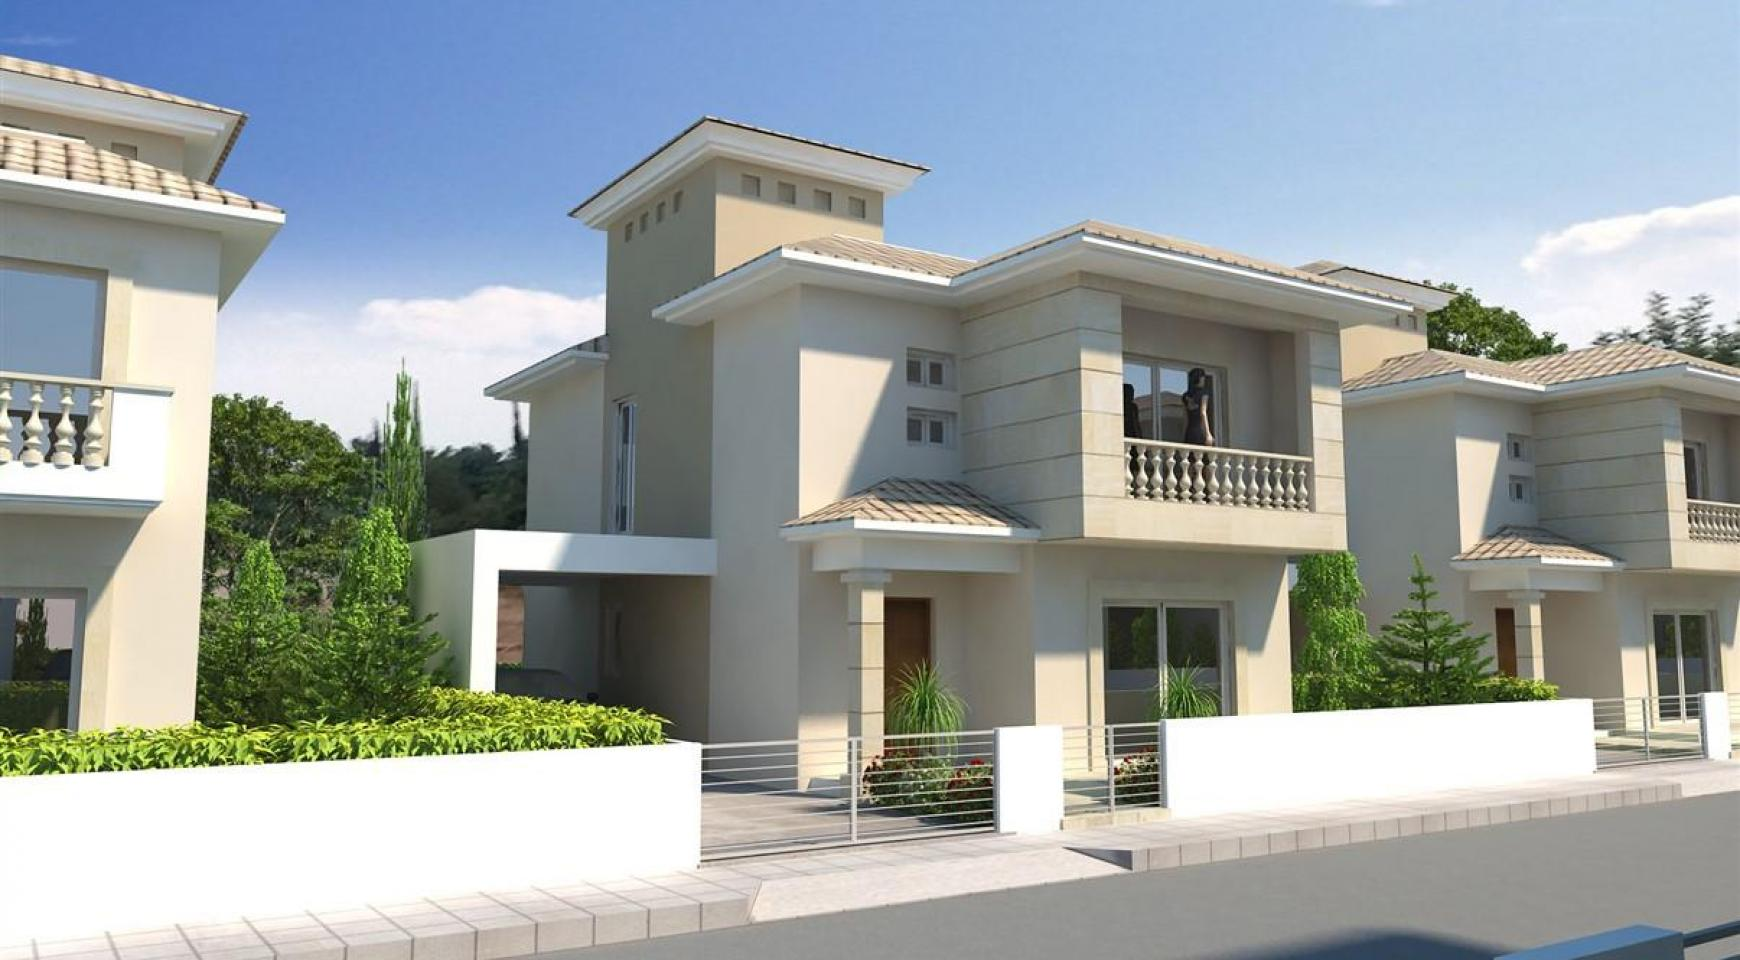 3 Bedroom Villa within a New Project - 3